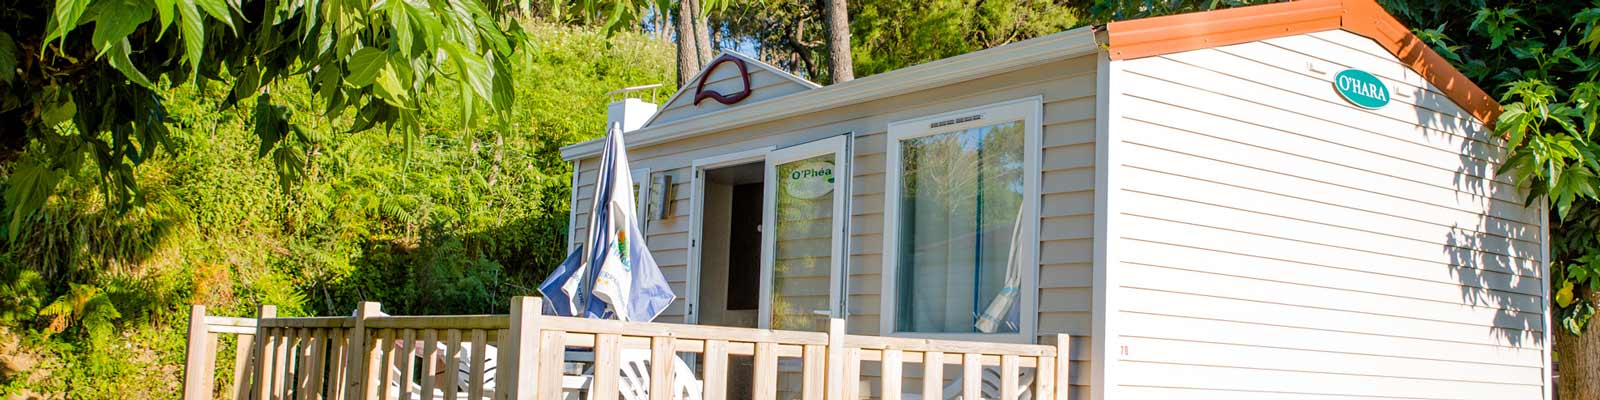 location mobil-home 2 personnes saint jean de luz